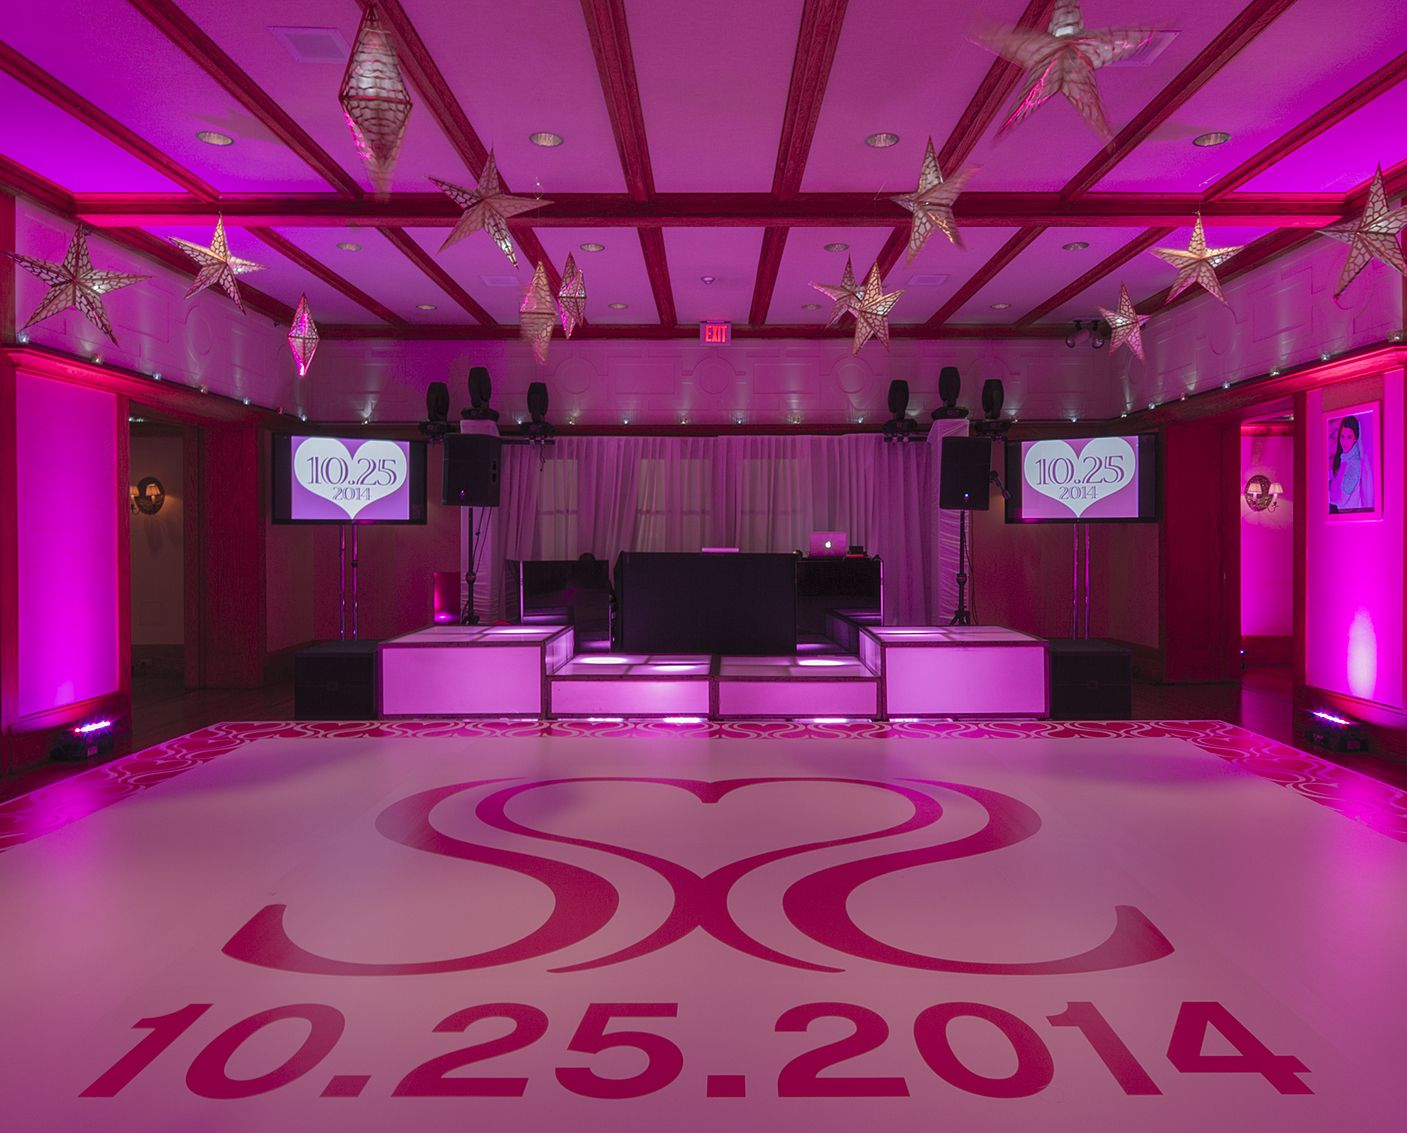 Custom Dance Floor For A Pink Heart Themed Bat Mitzvah In New York Lighting Design Included All Around Led Blocks At The Dj Booth And Hanging